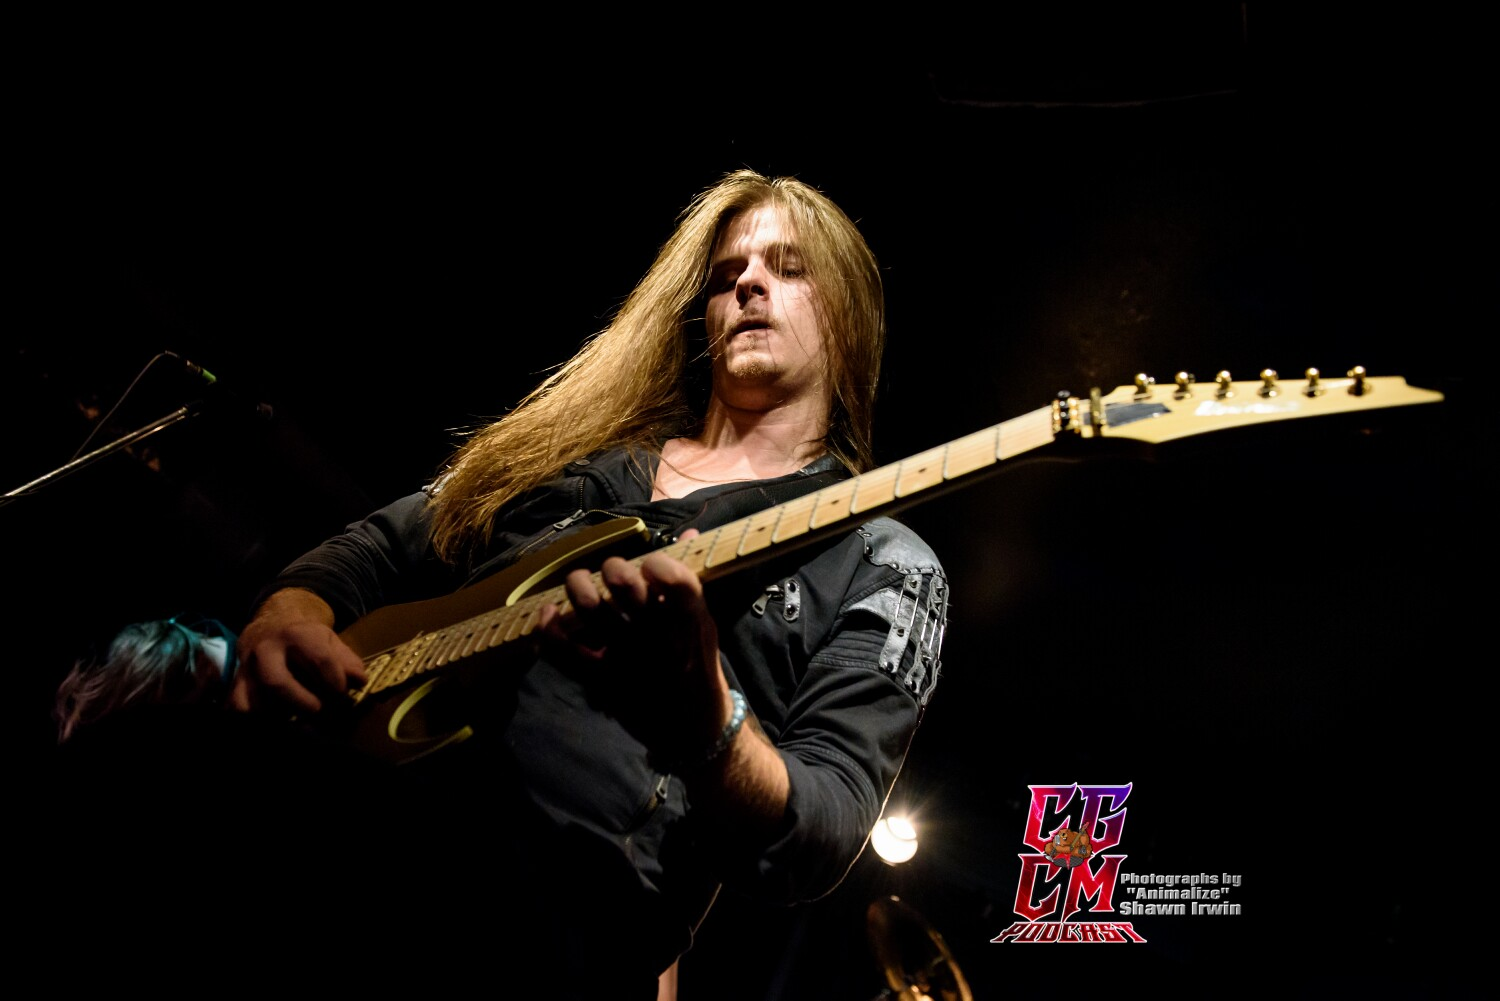 Battle Beast Photos CGCM LOGO Shawn Irwin (10 Of 34)